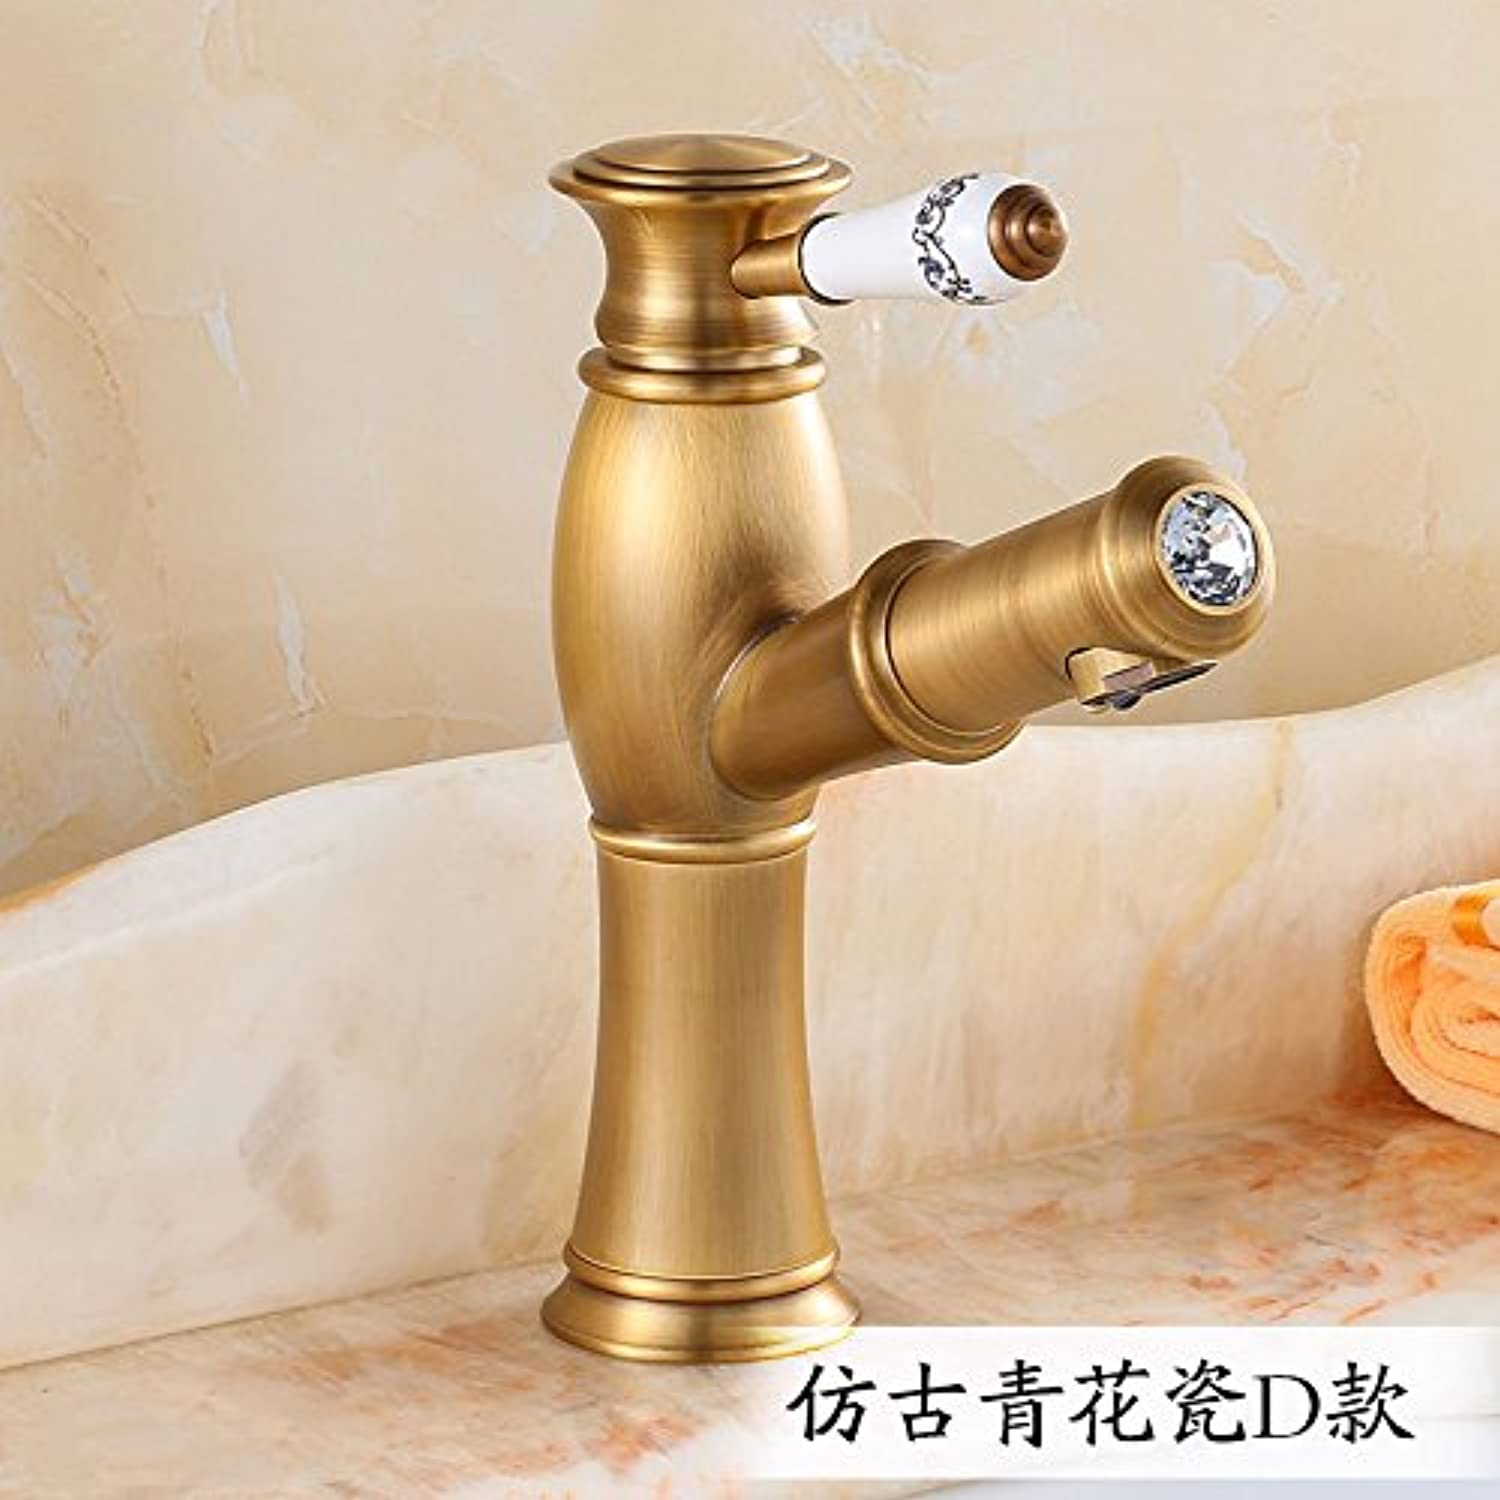 Bijjaladeva Bathroom Sink Vessel Faucet Basin Mixer Tap full bench of copper basin sink vanity area with hot and cold water faucets bathroom faucets wash it scalable to pull faucet